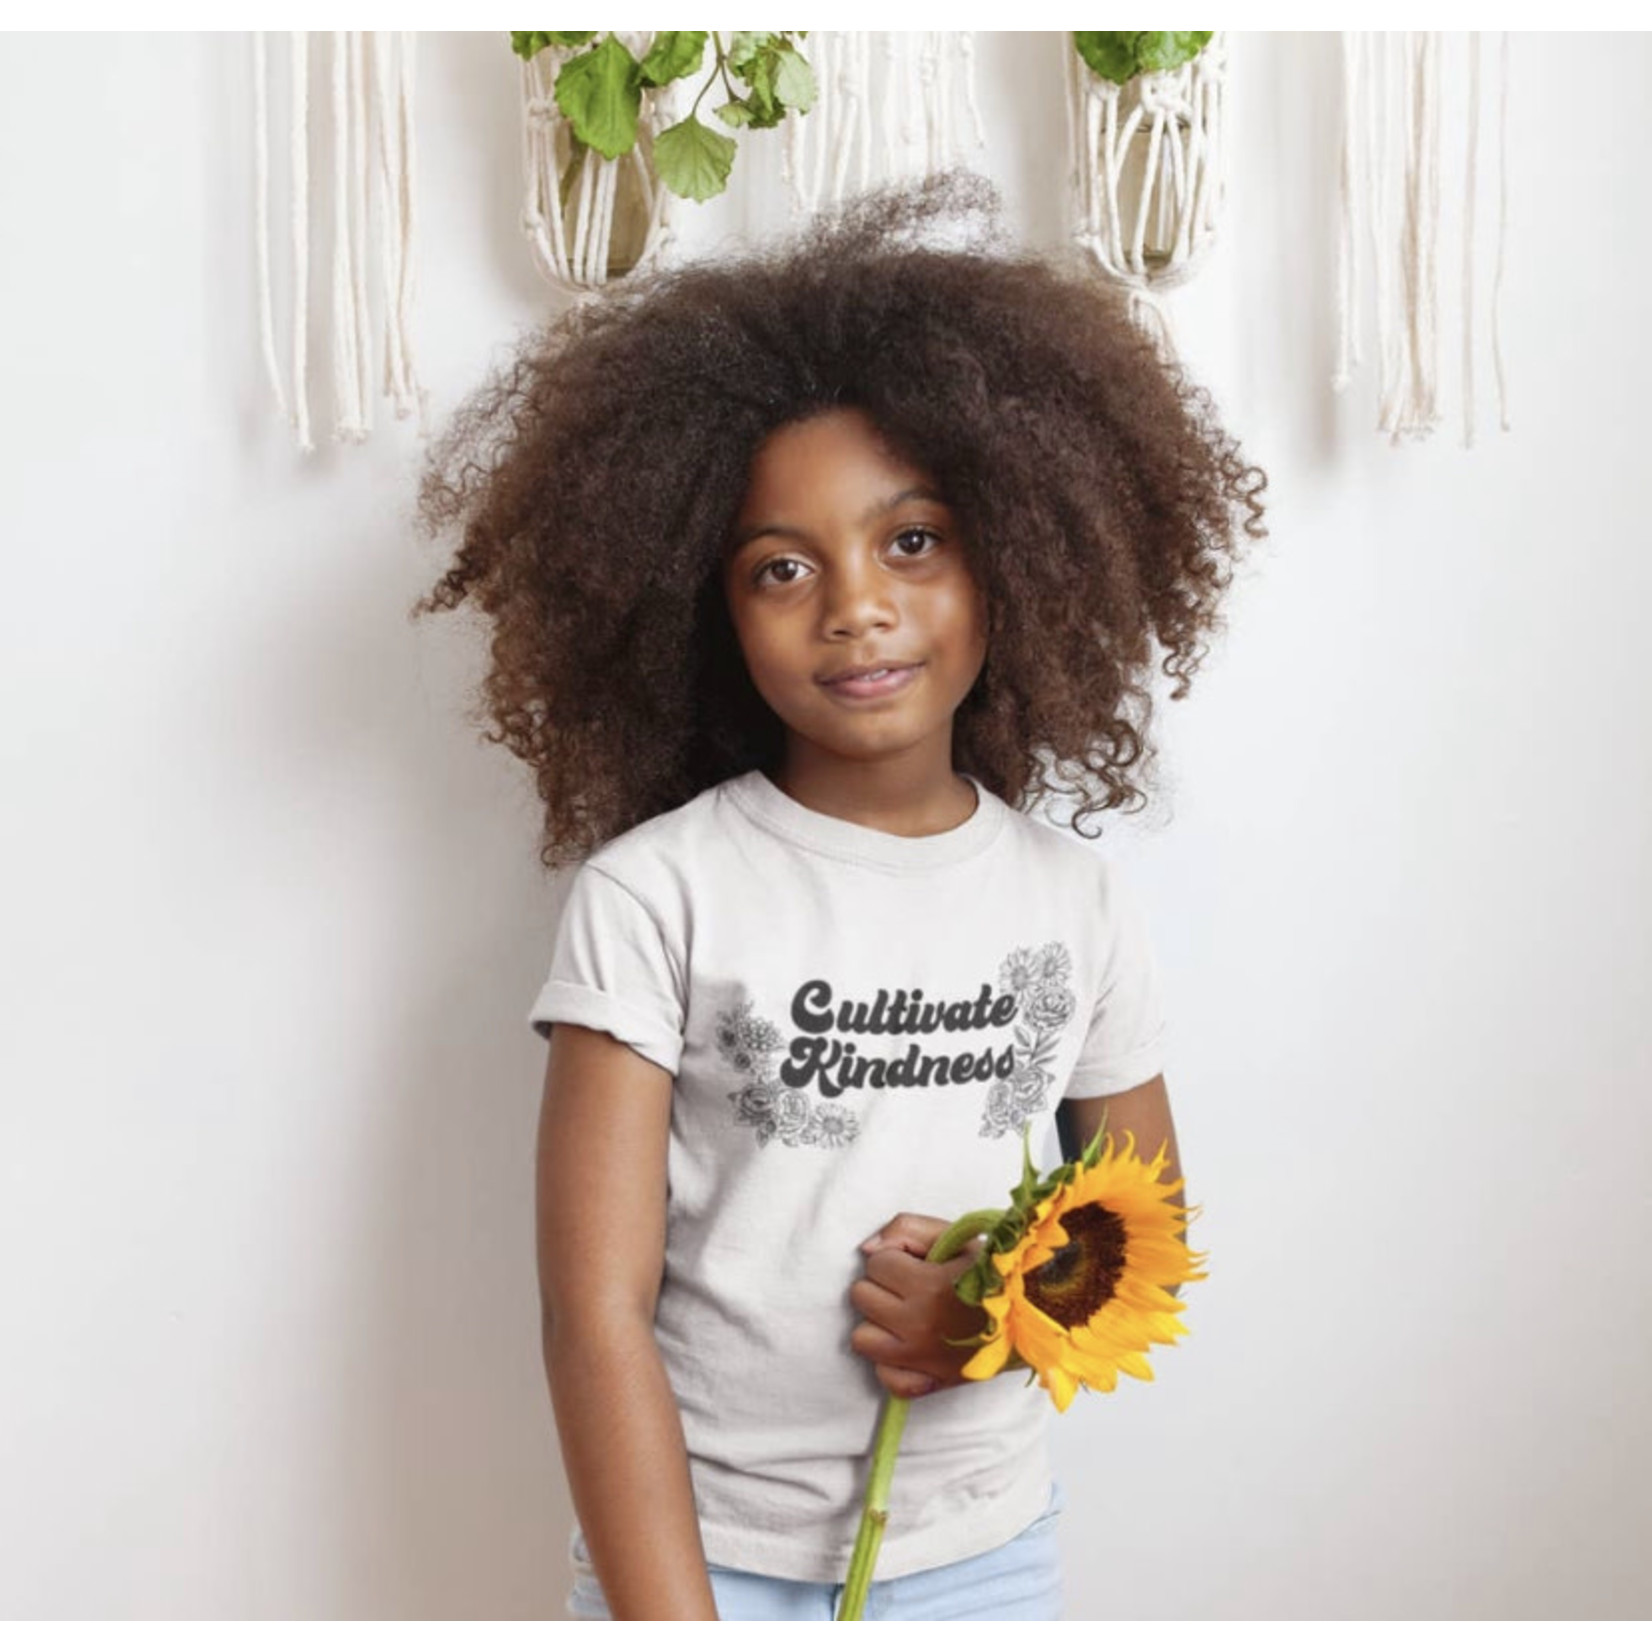 Funnel cake tree Funnel cake tree  Medium cultivate kindness youth graphic tee